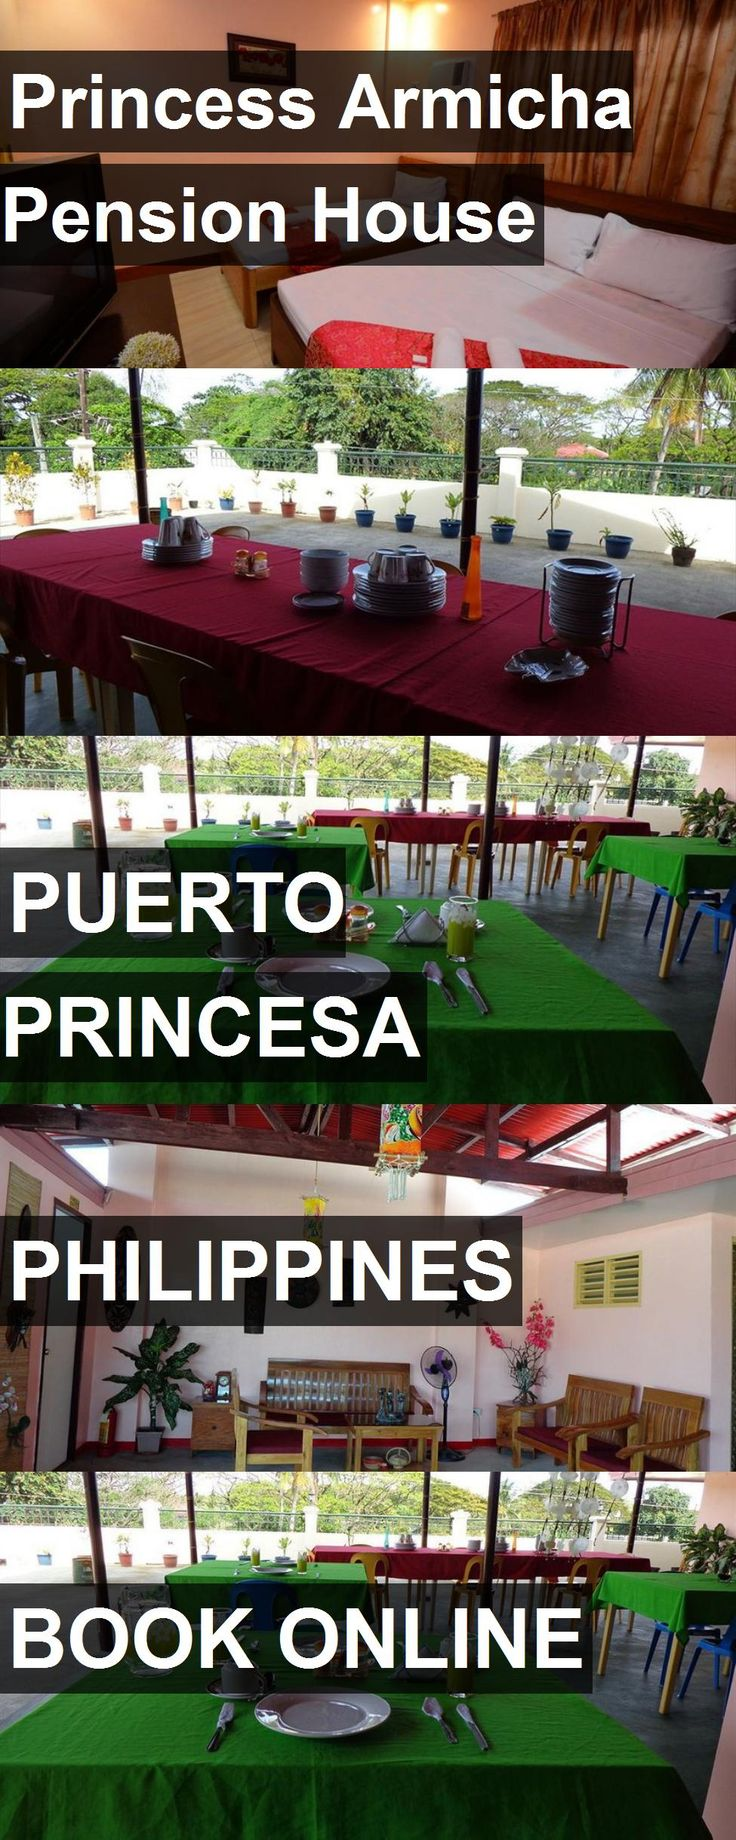 Hotel Princess Armicha Pension House in Puerto Princesa, Philippines. For more information, photos, reviews and best prices please follow the link. #Philippines #PuertoPrincesa #travel #vacation #hotel